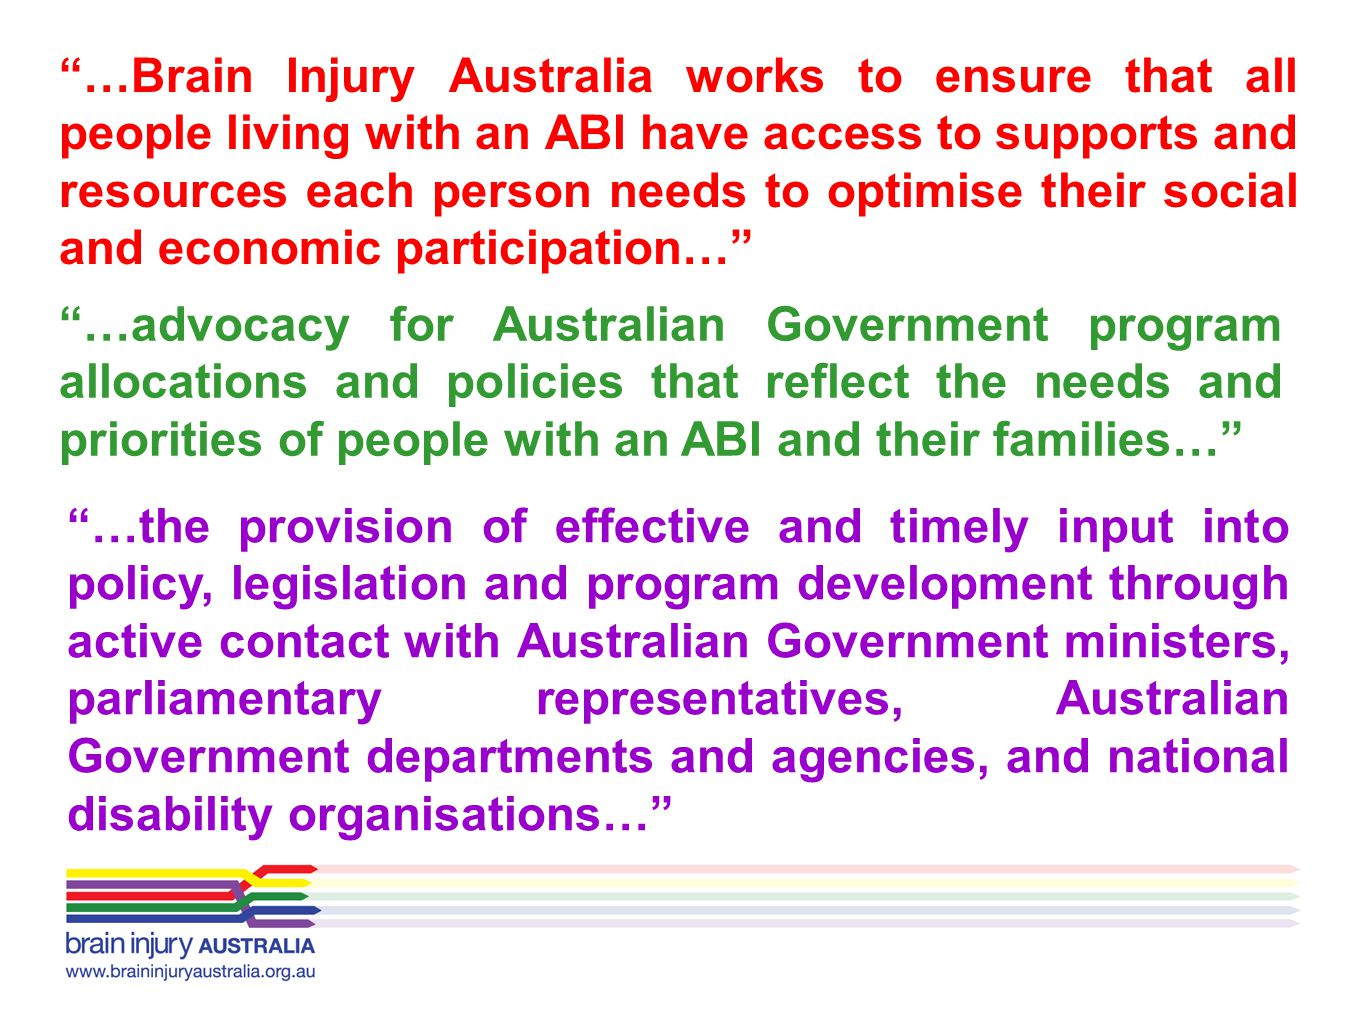 …Brain Injury Australia works to ensure that all people living with an ABI have access to supports and resources each person needs to optimise their social and economic participation…